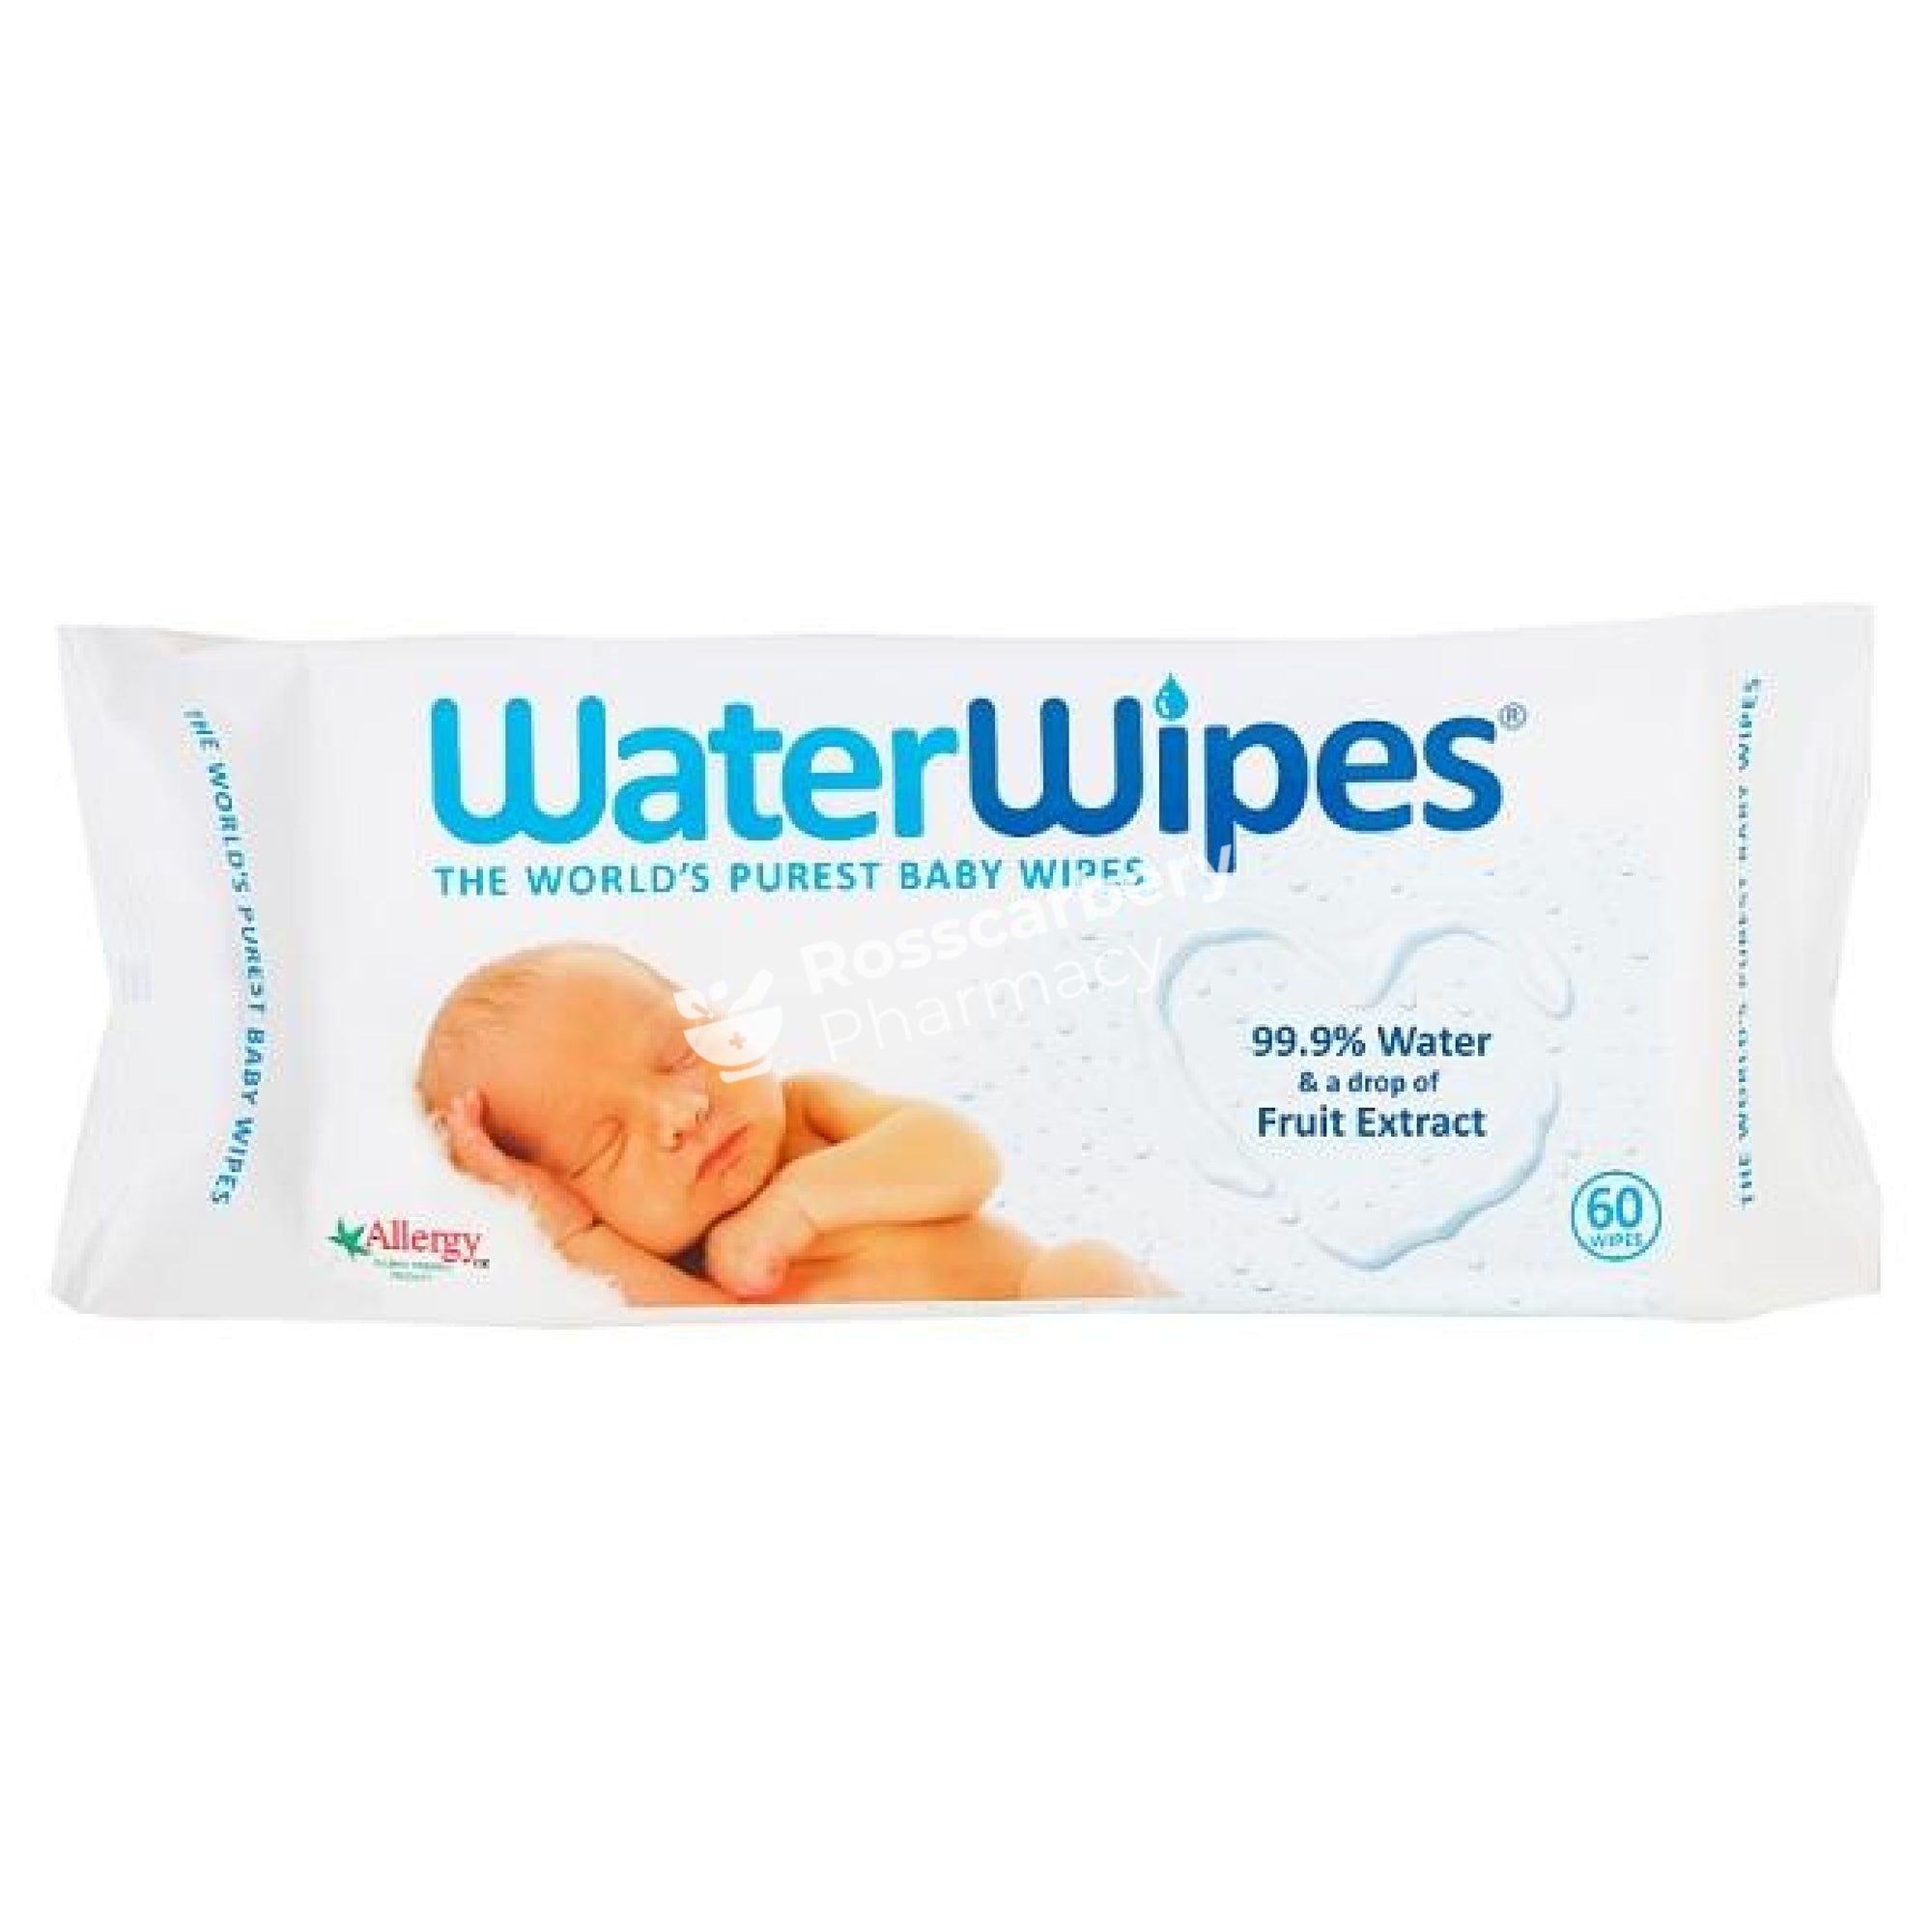 Water Wipes Cotton Wool & Tissues